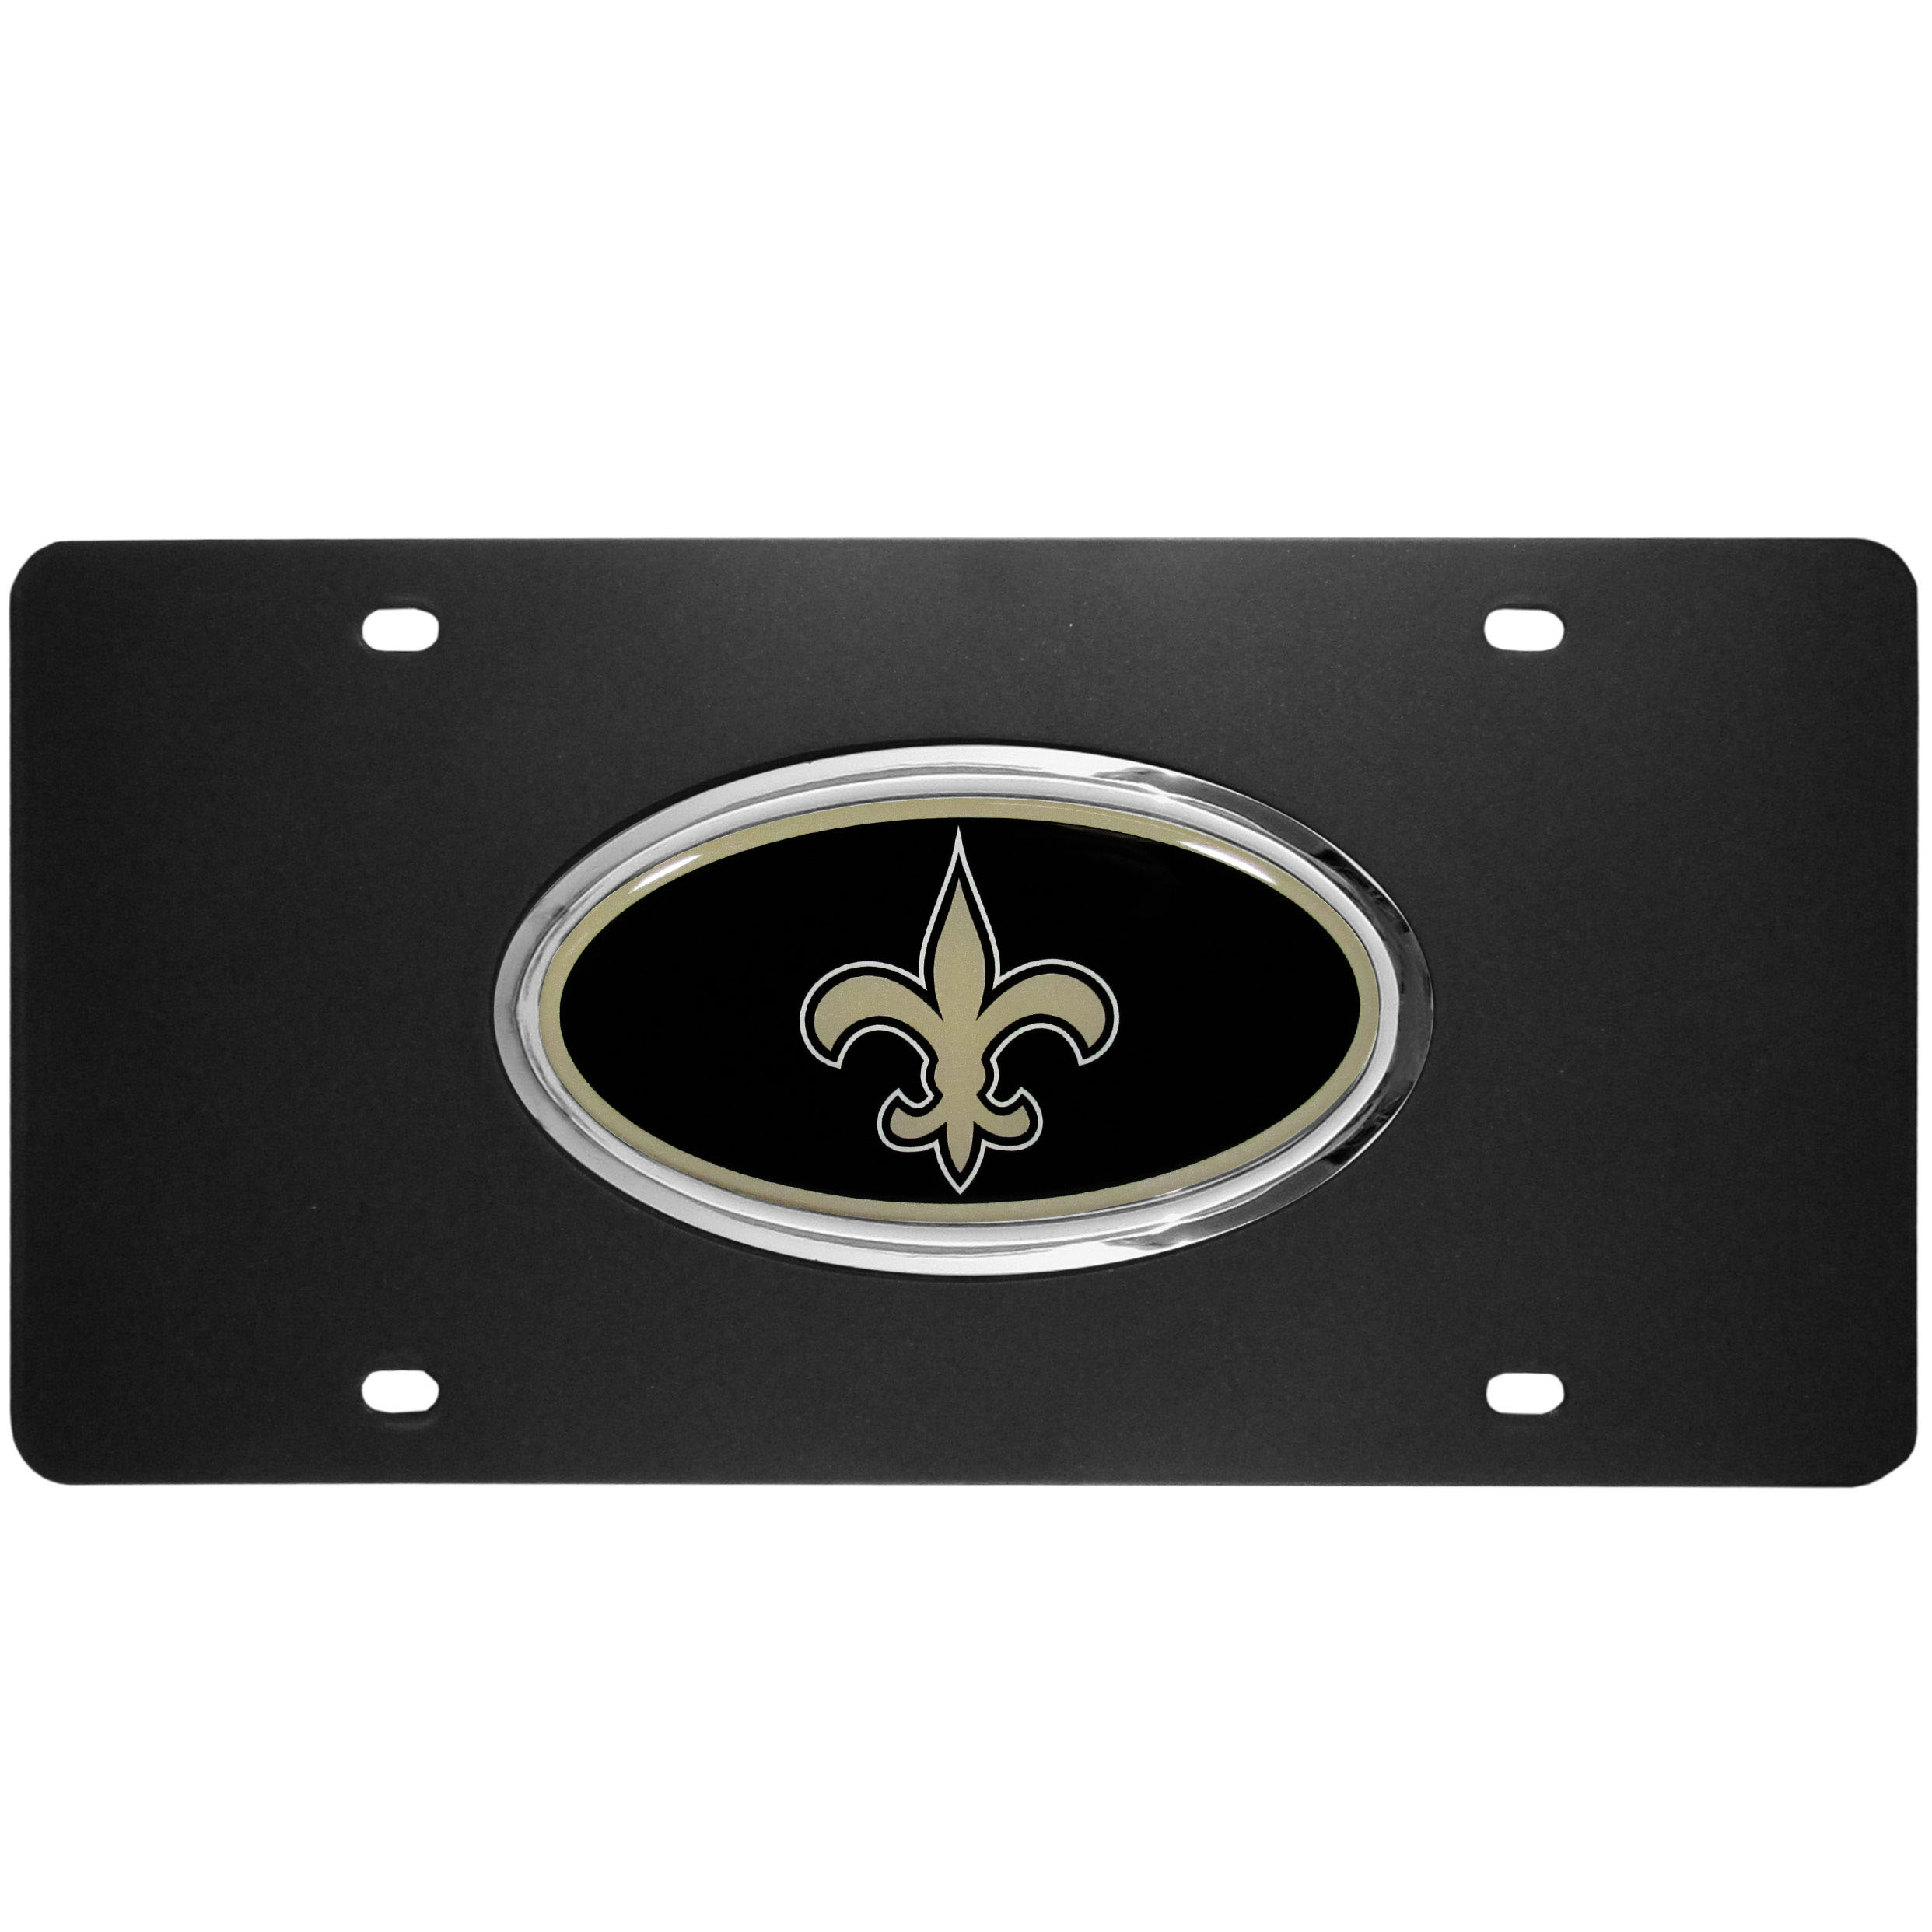 New Orleans Saints Acrylic License Plate - Our New Orleans Saints acrylic license plate is a step above the rest. It is made of thick, durable acrylic with a matte black finish and raised chrome saddle for the extra large team emblem.